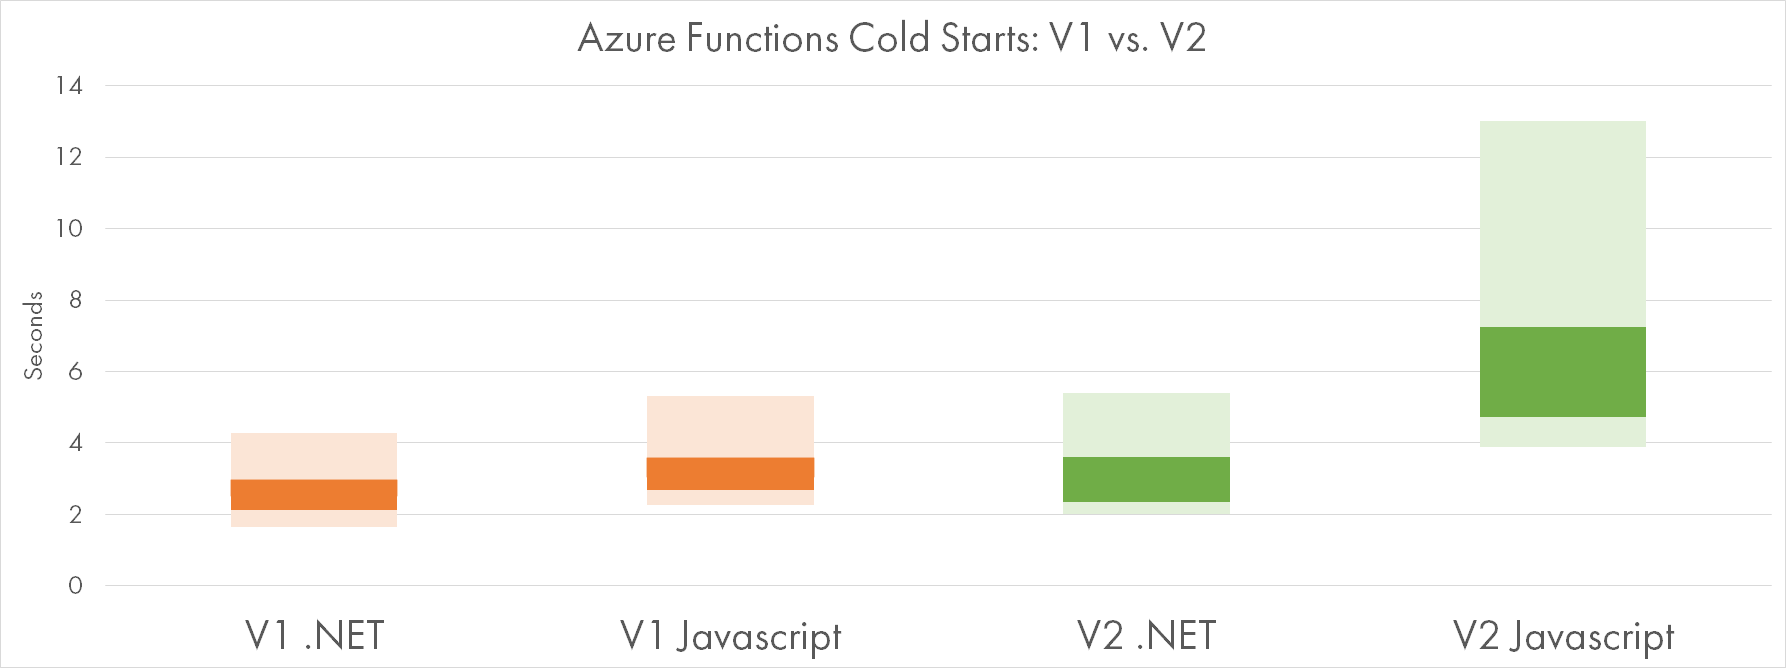 Cold Starts V1 vs V2: .NET and Javascript